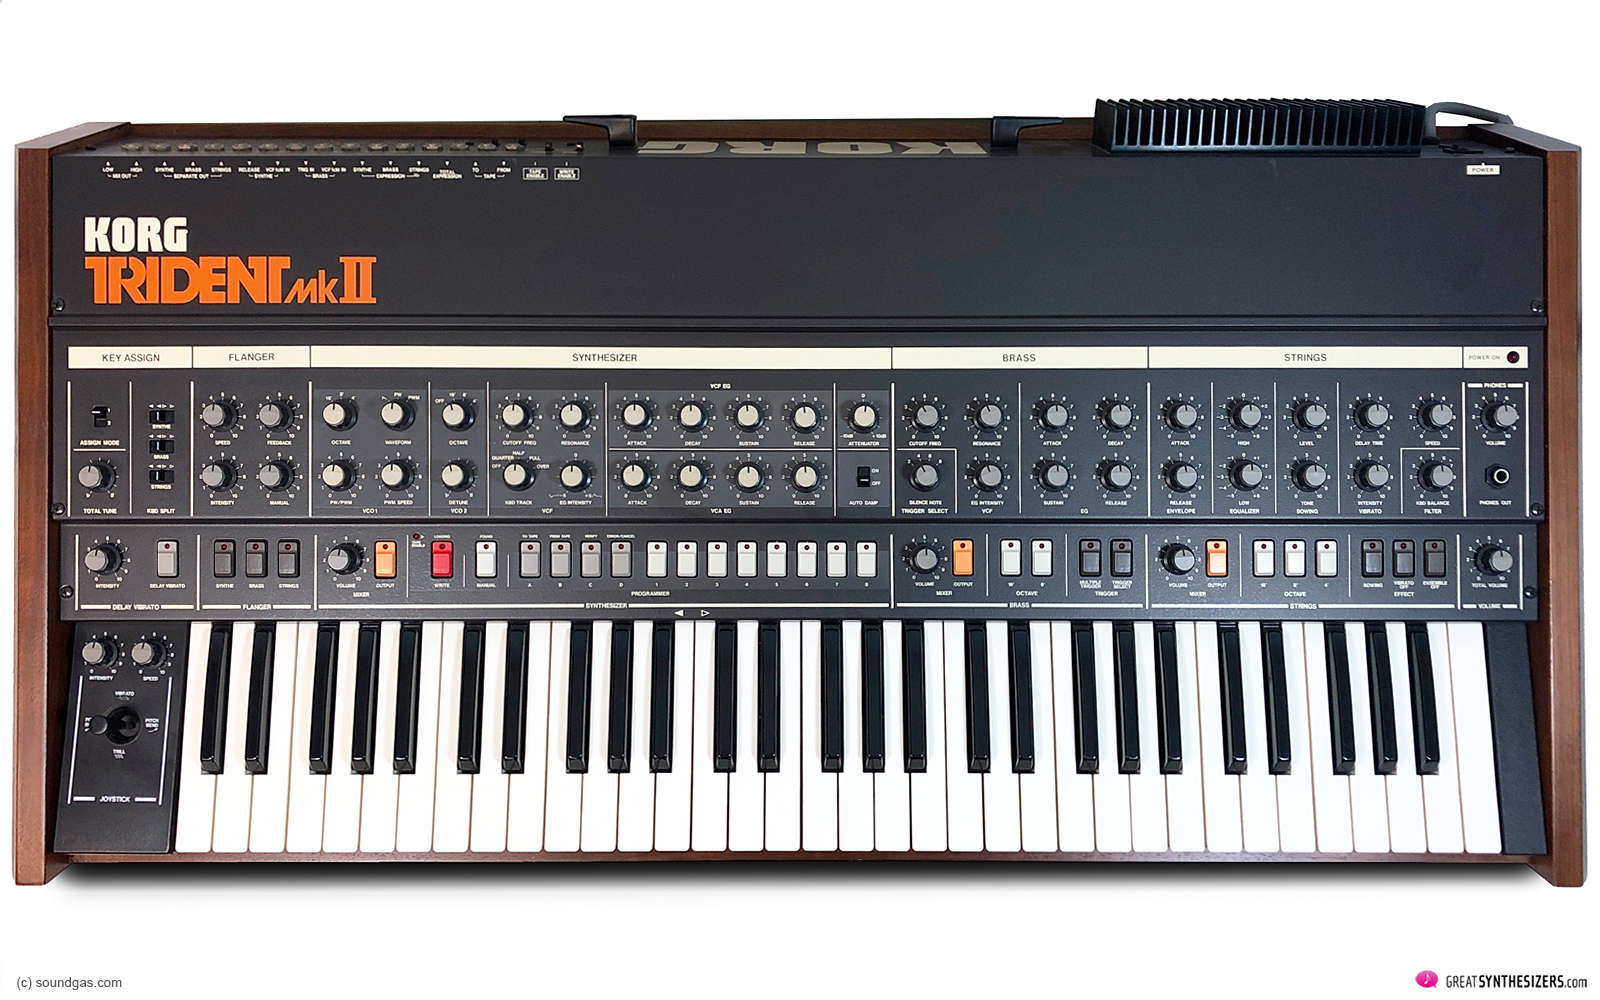 Korg Trident MKII Synthesizer